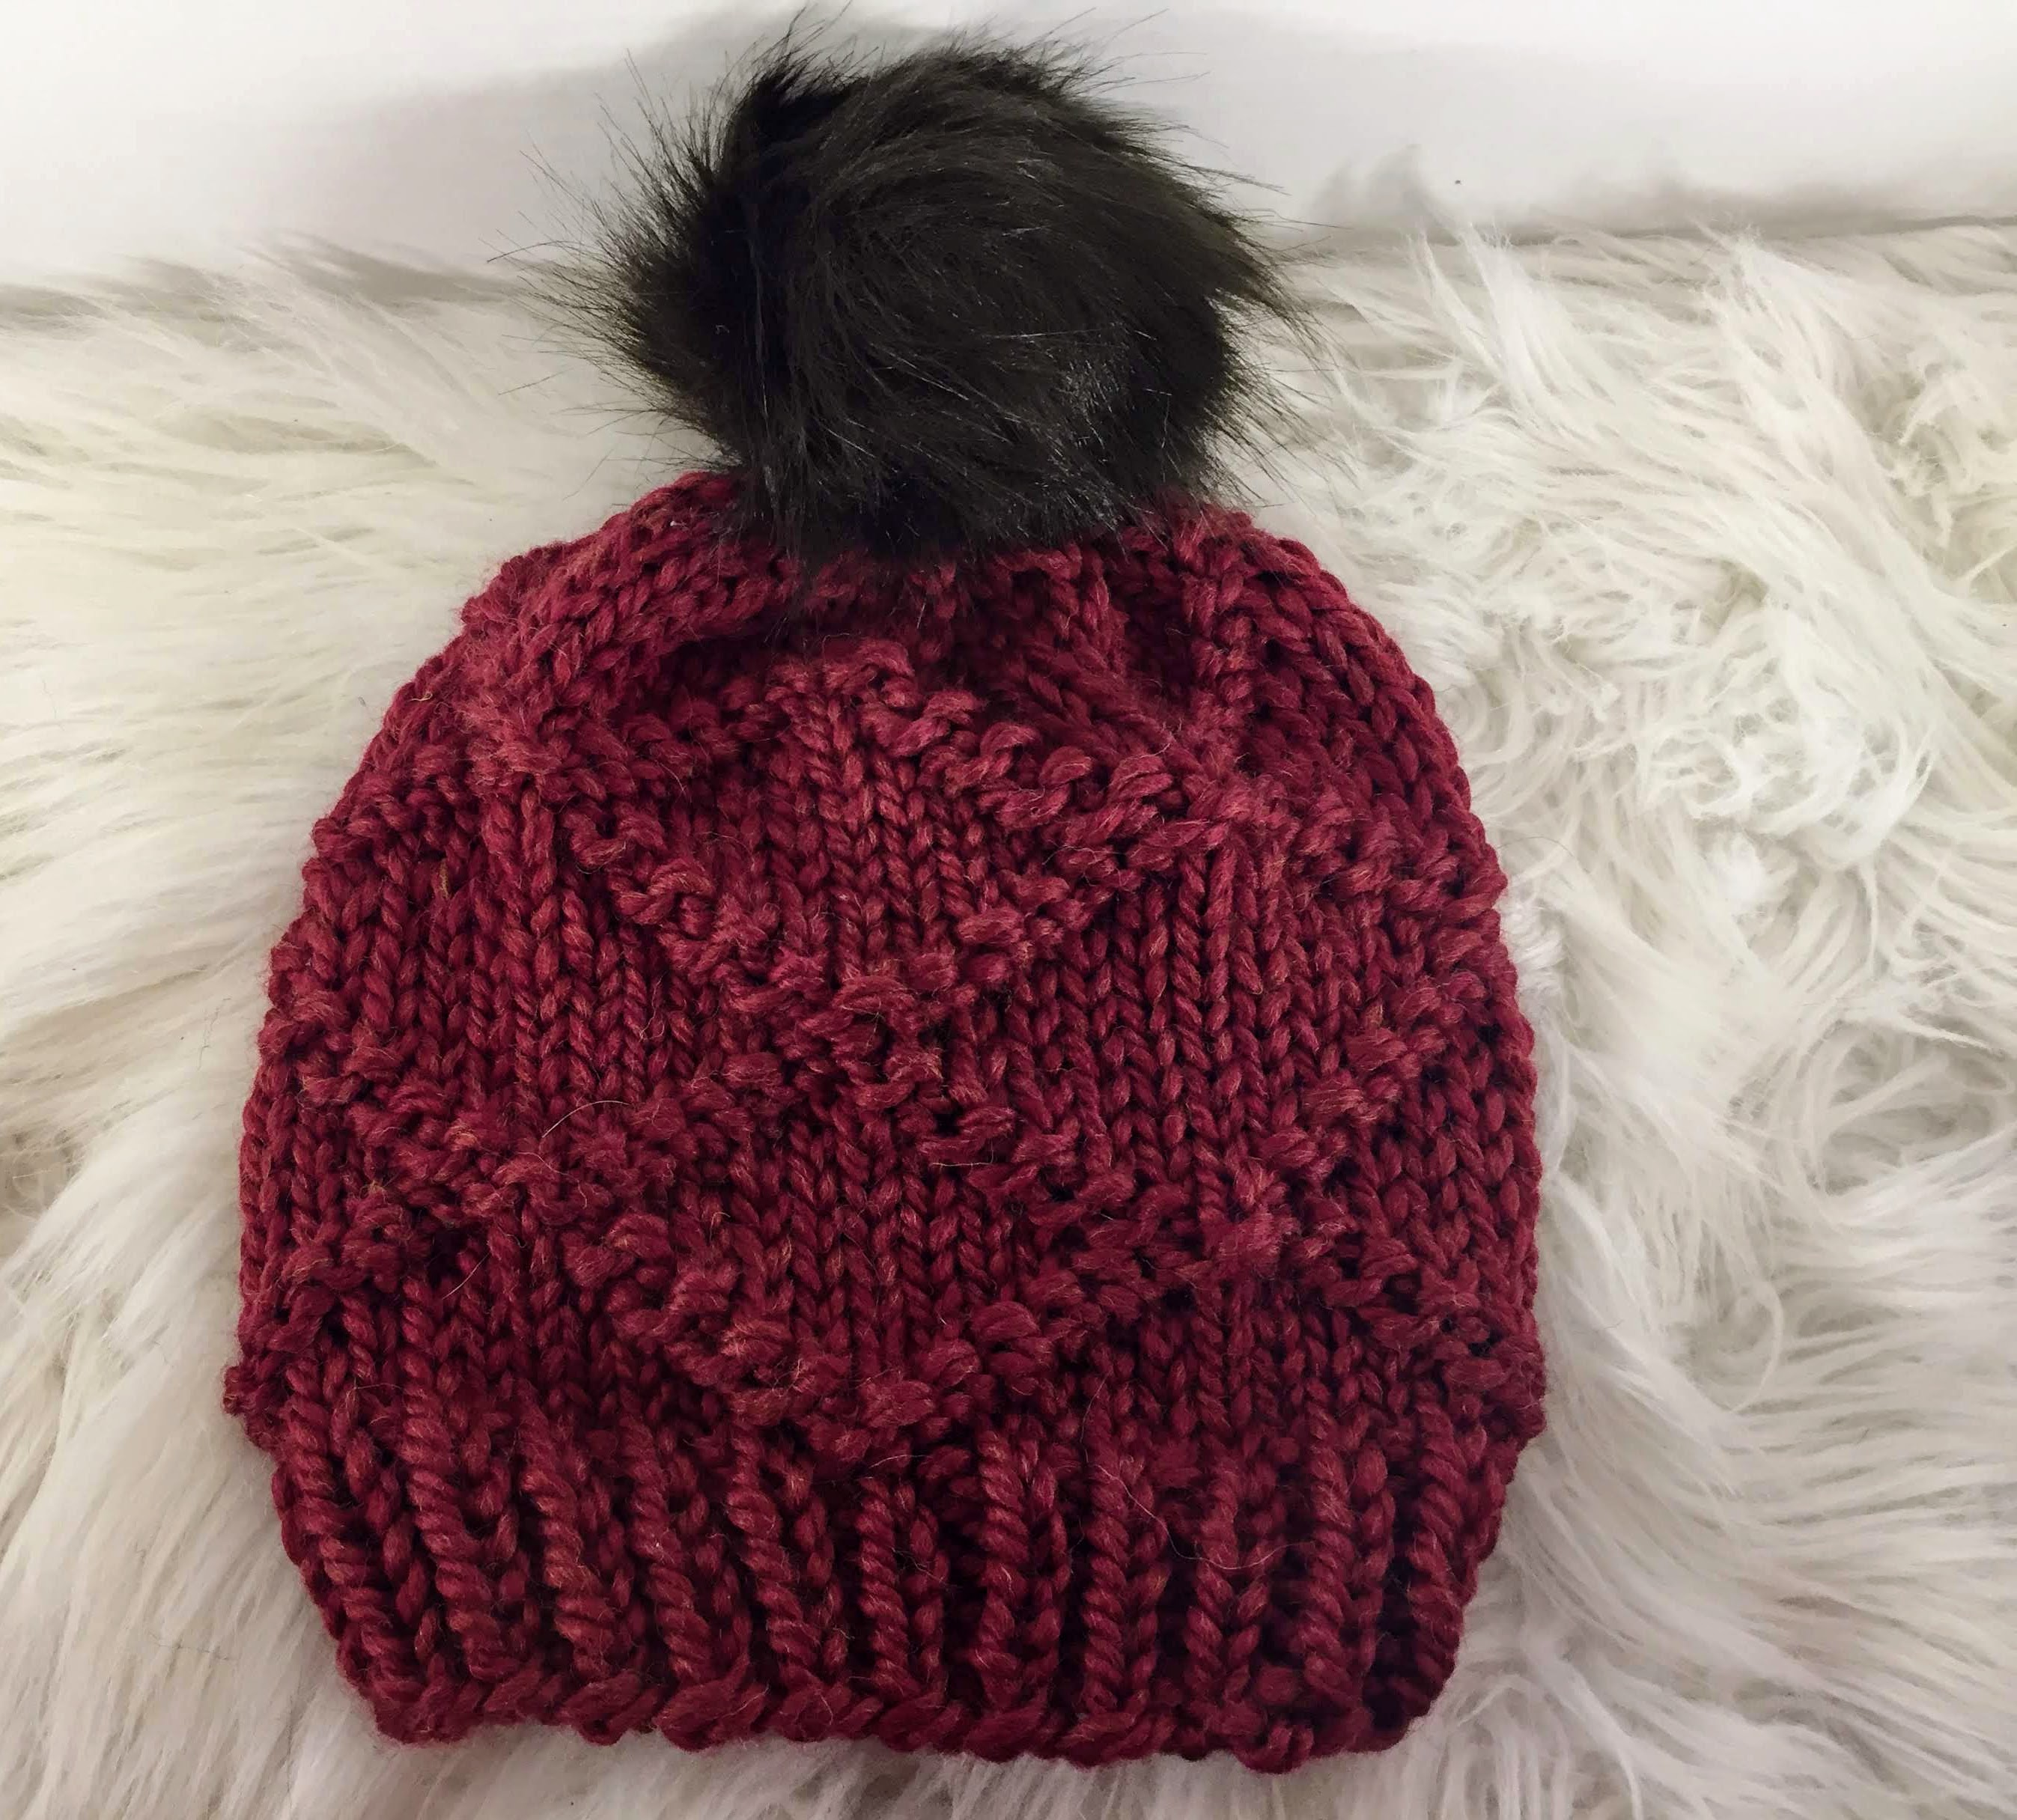 The Diamond Knit Hat